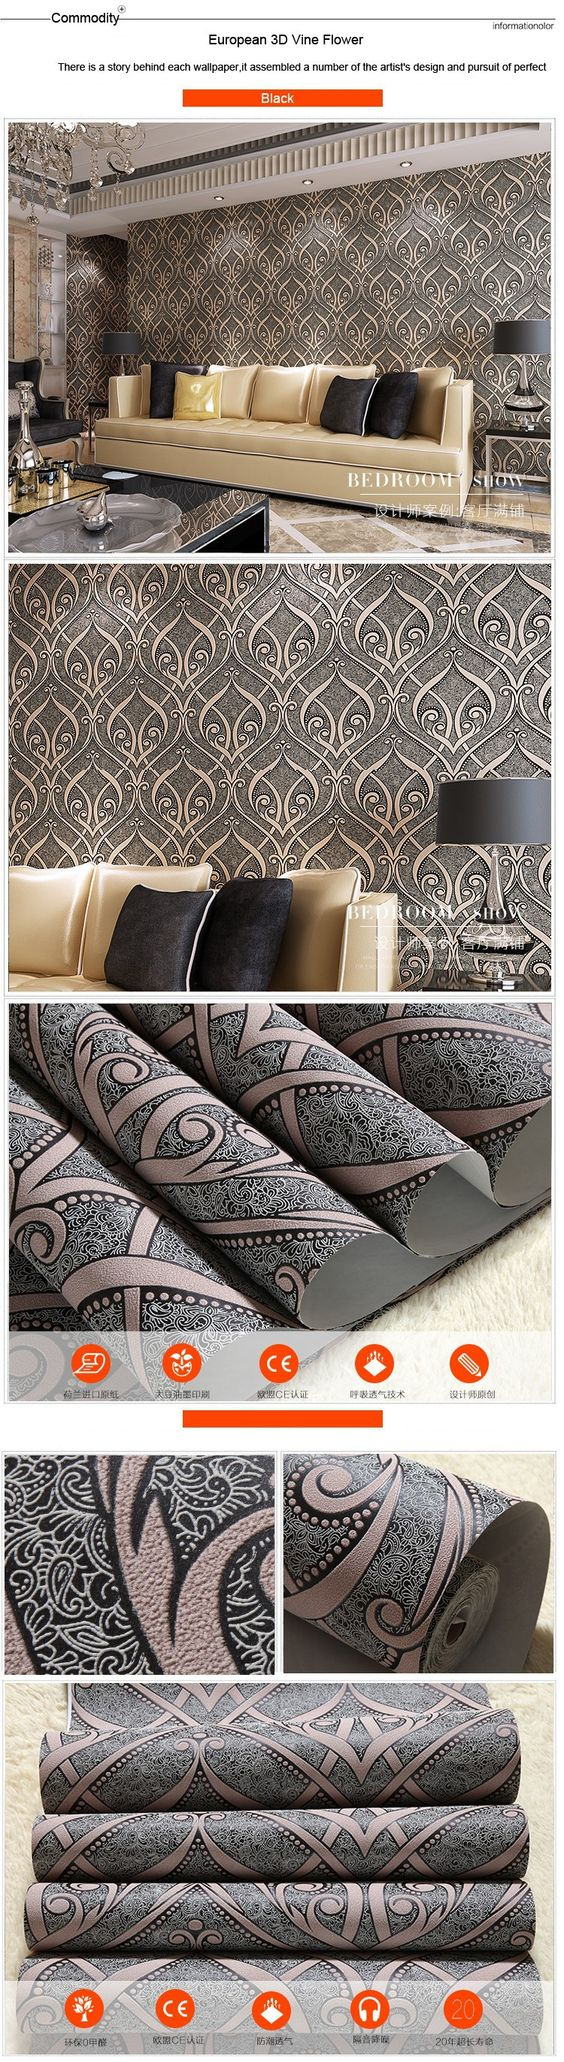 Bloemen wallpapers niet geweven, bloem wijnstok europese behang voor de muren, behang voor slaapkamer, moderne behang wandbekleding 3d in PVC Wall Paper Flower Vintage,Floral Wallpaper Roll,Embossed wallpapers for living room bedroom paper decoration for wal van wallpapers op AliExpress.com | Alibaba Groep